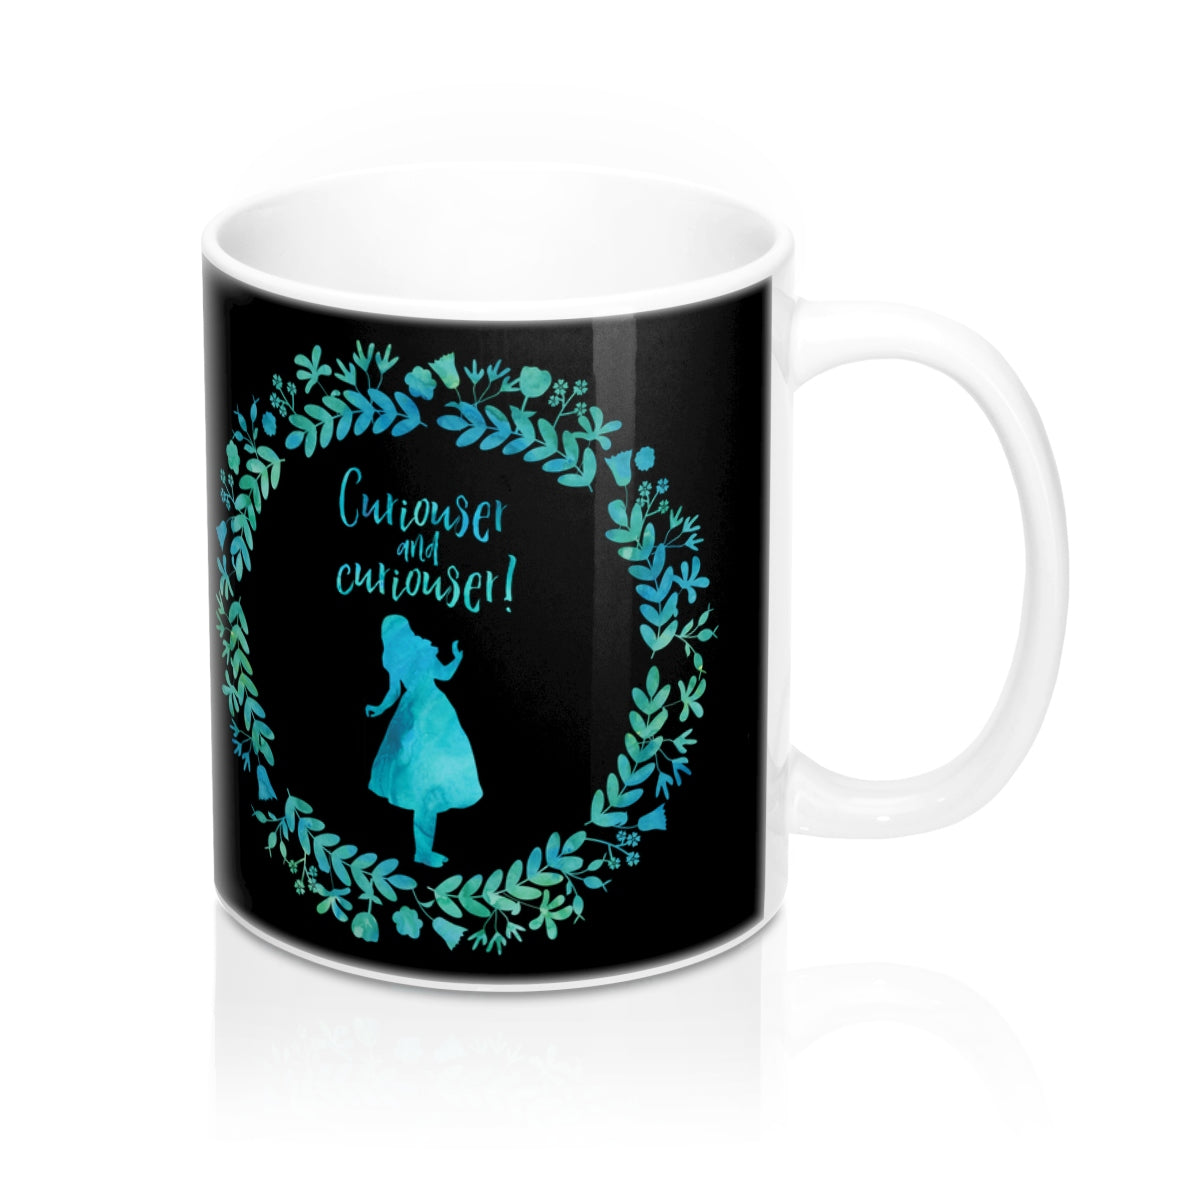 Curiouser and curiouser! Alice in Wonderland Mug - LitLifeCo.